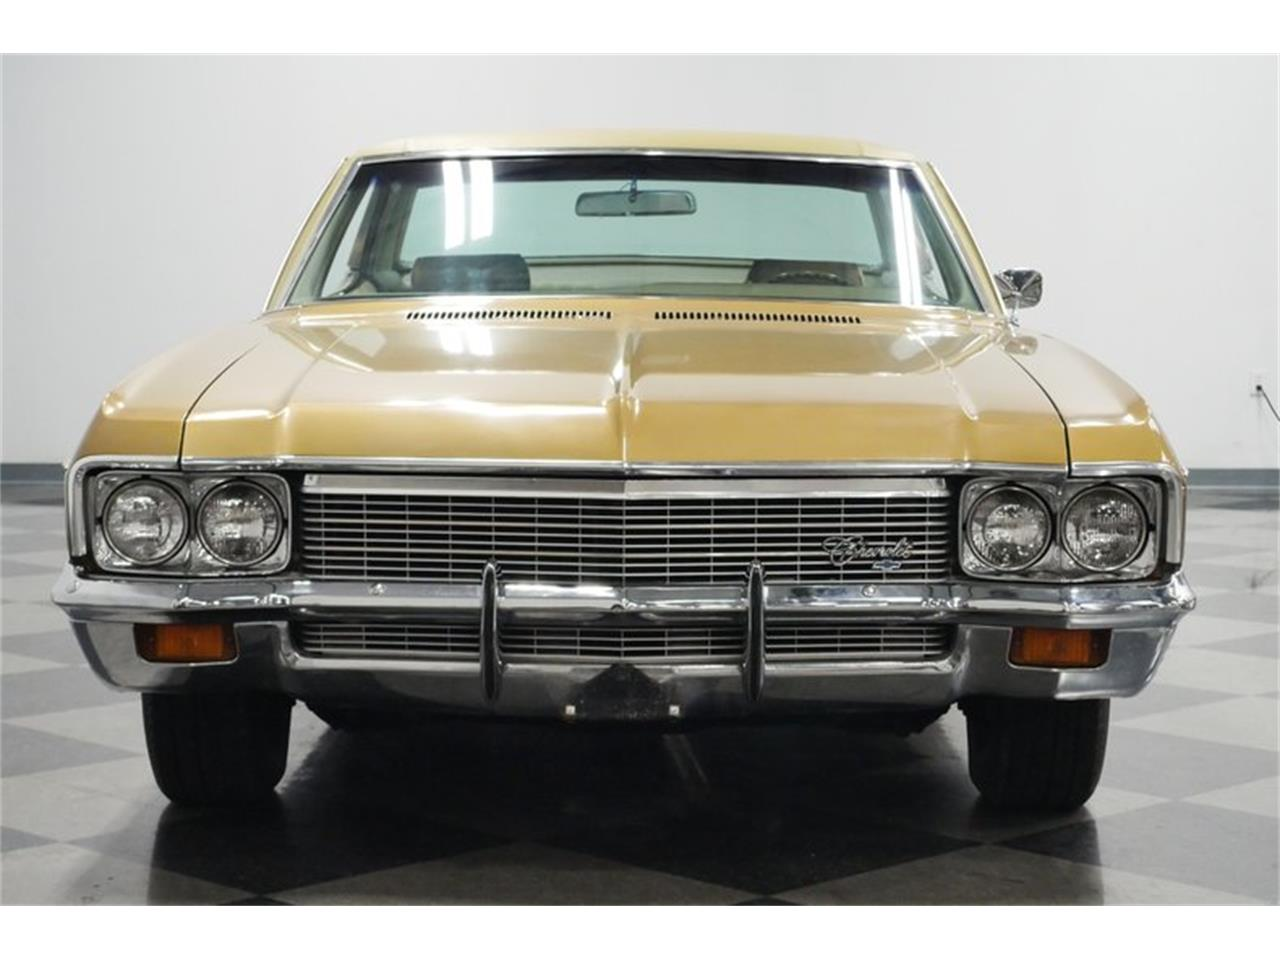 1970 Chevrolet Impala (CC-1410088) for sale in Lavergne, Tennessee